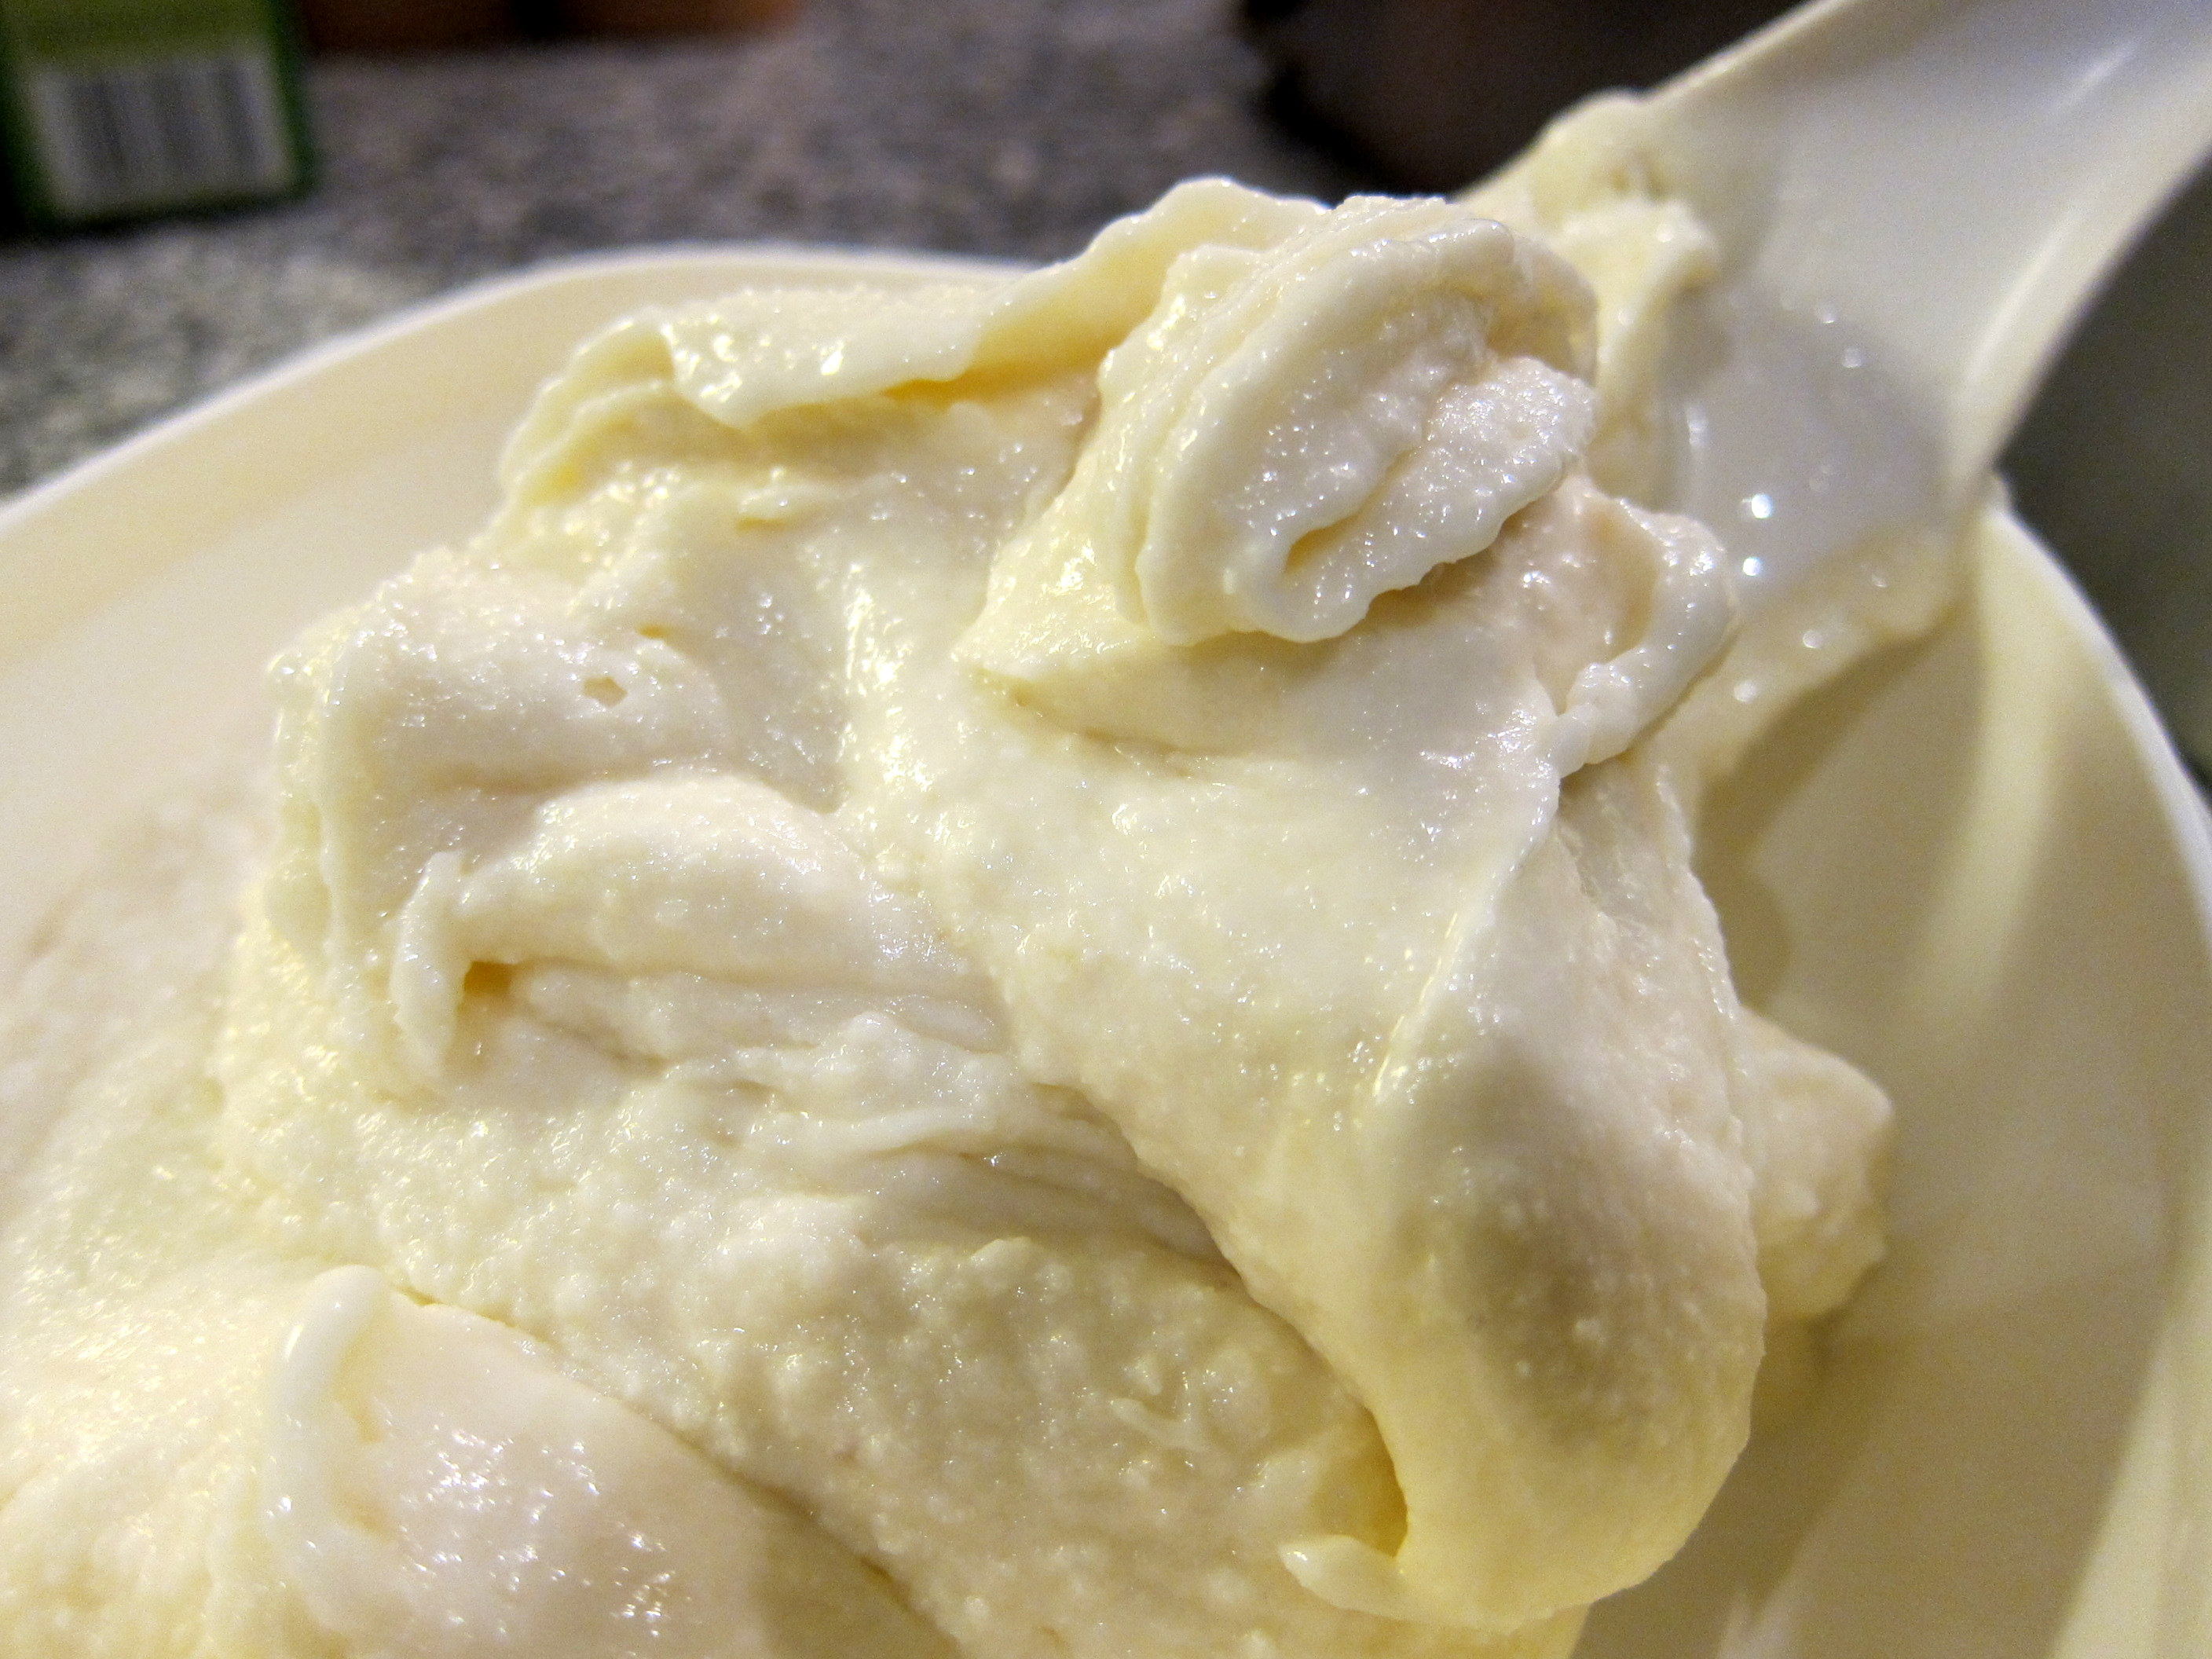 Marzipan ice cream - straight from the churning